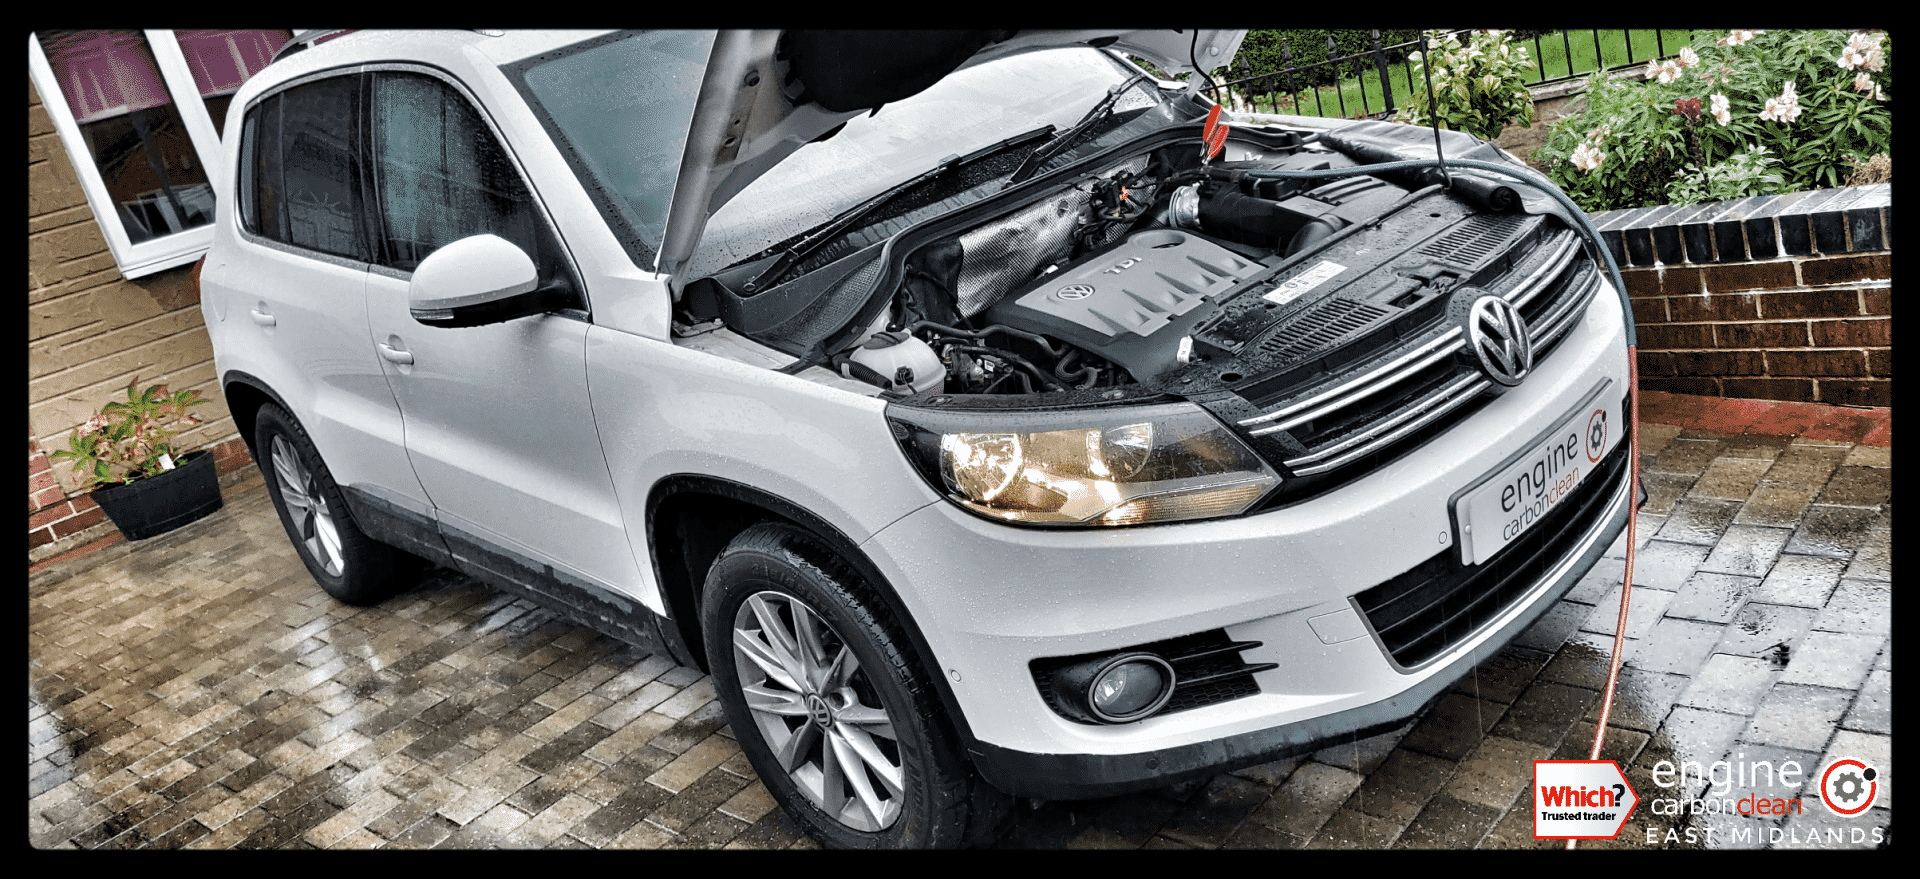 Diagnostic Consultation and Engine Carbon Clean on a VW Tiguan 2.0 TDI (2013 - 69,206 miles)